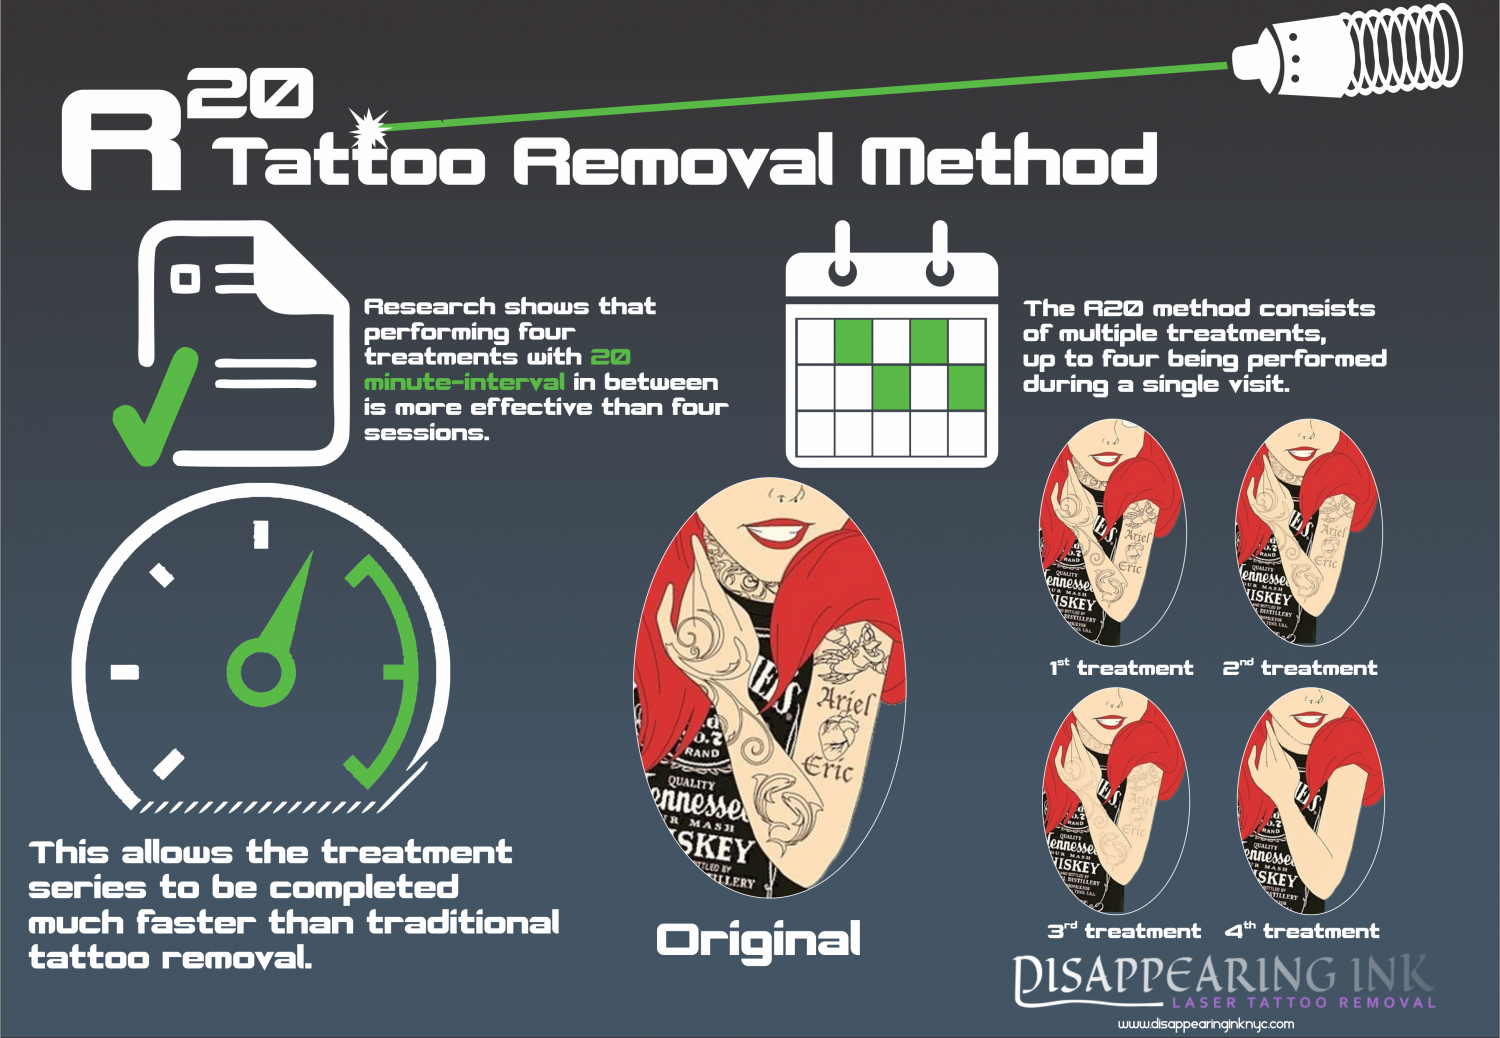 The R20 Method of Removing Tattoo Infographic